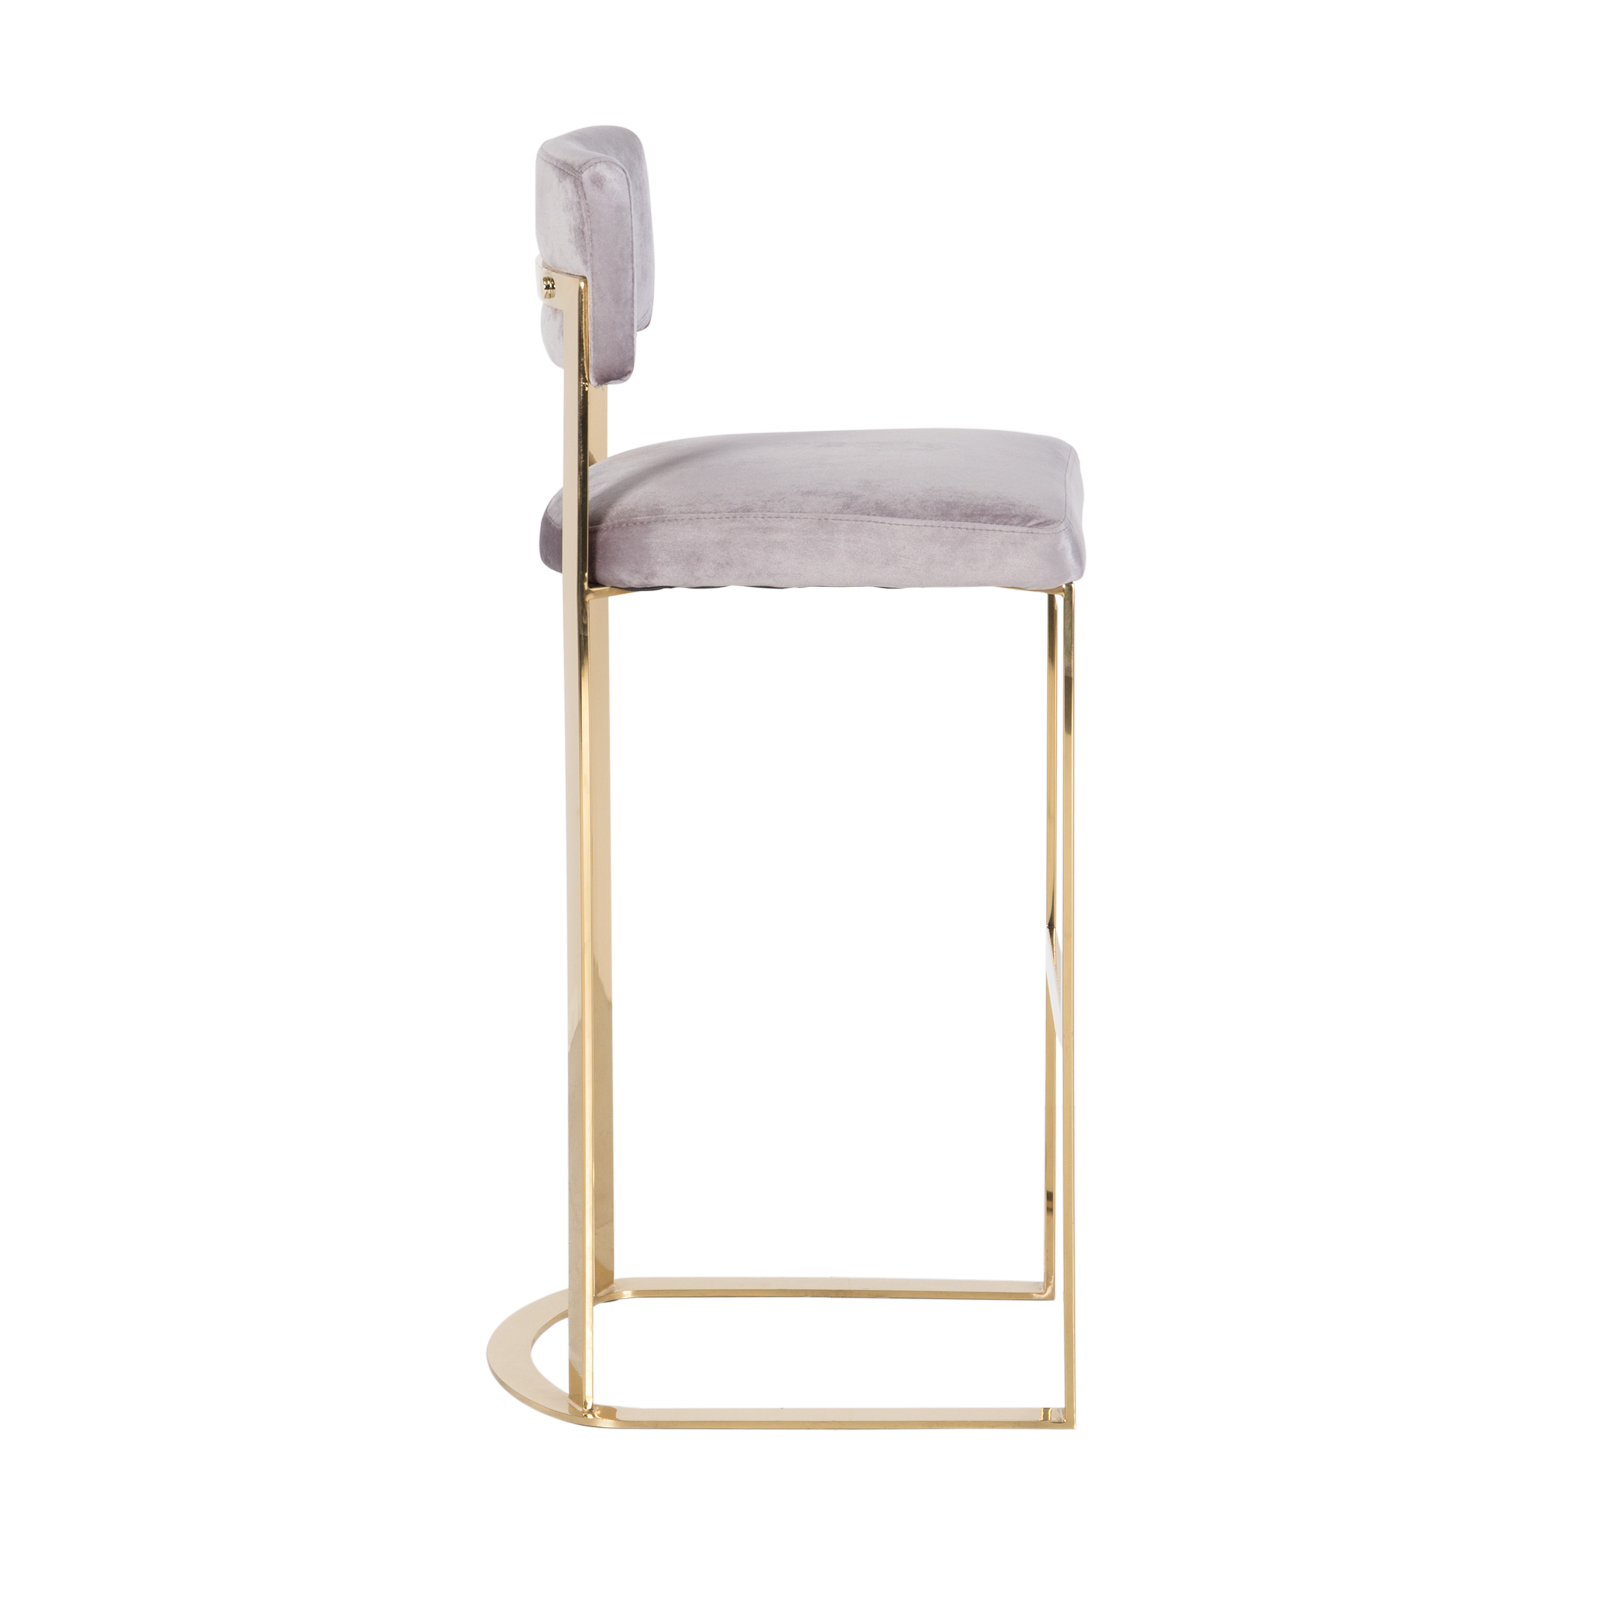 Surprising Garbo Barstool Gold Bar Stool Rentals Formdecor Gmtry Best Dining Table And Chair Ideas Images Gmtryco